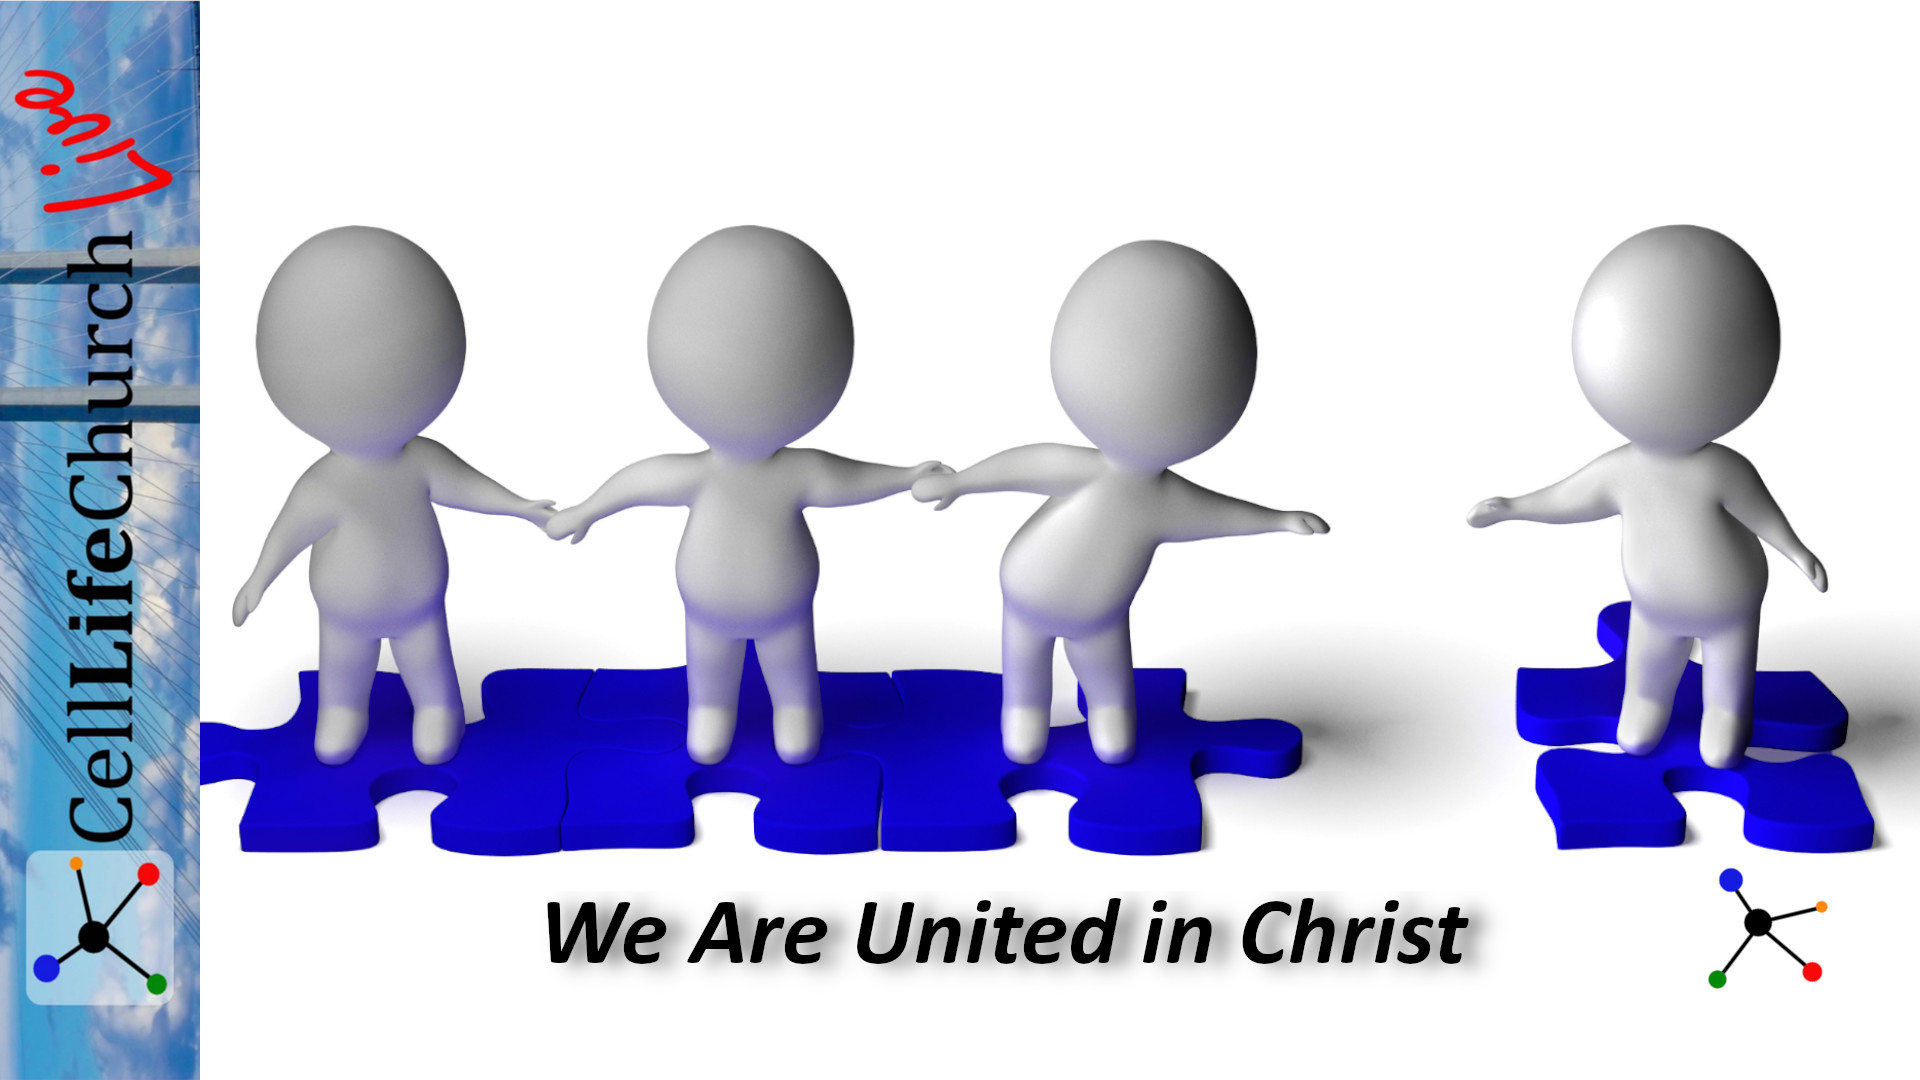 We Are United in Christ